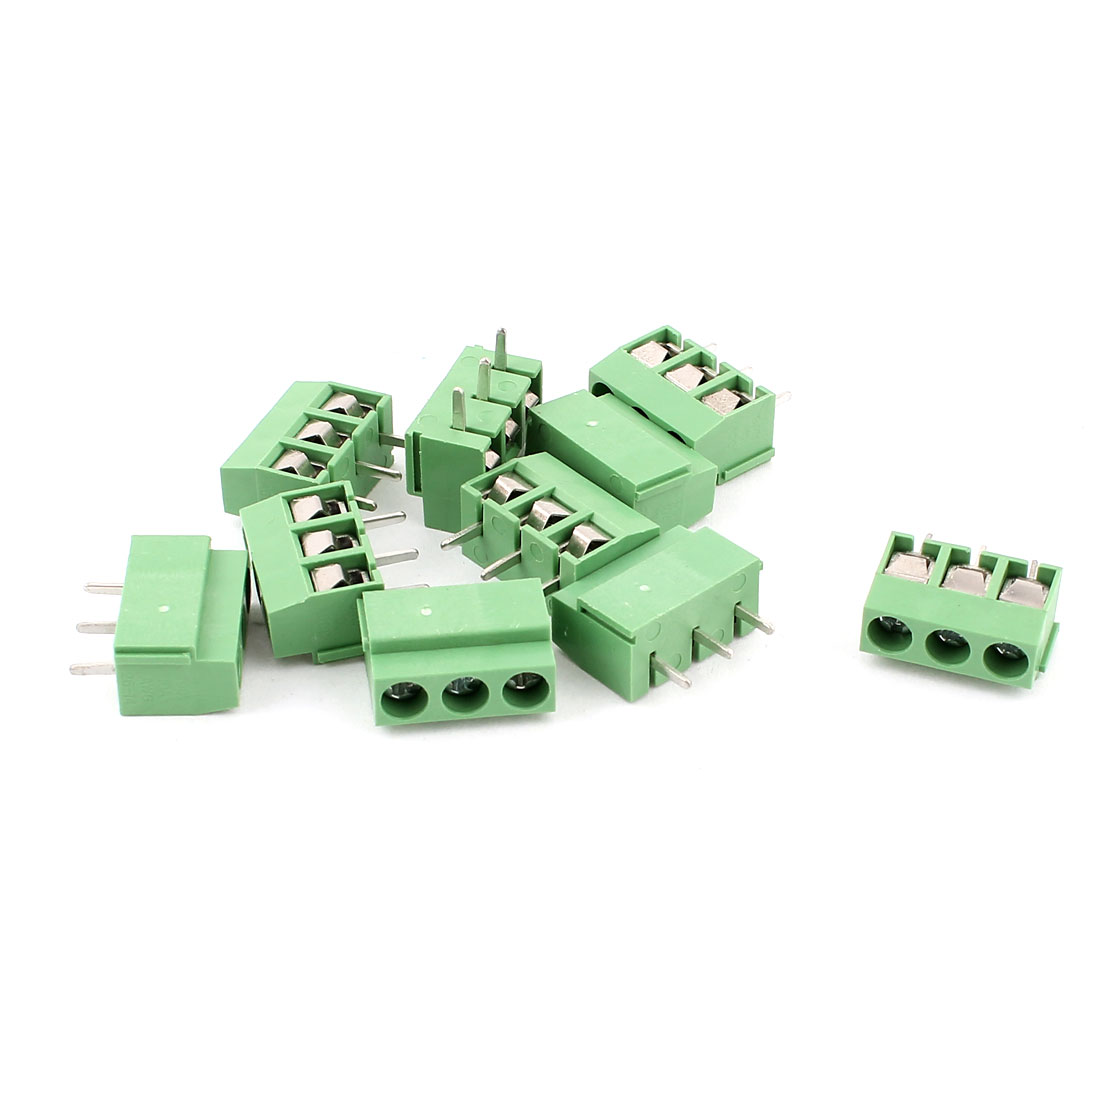 10 Pcs AC 300V 10A Screw Terminal Block Connector 5.0mm Pitch Green